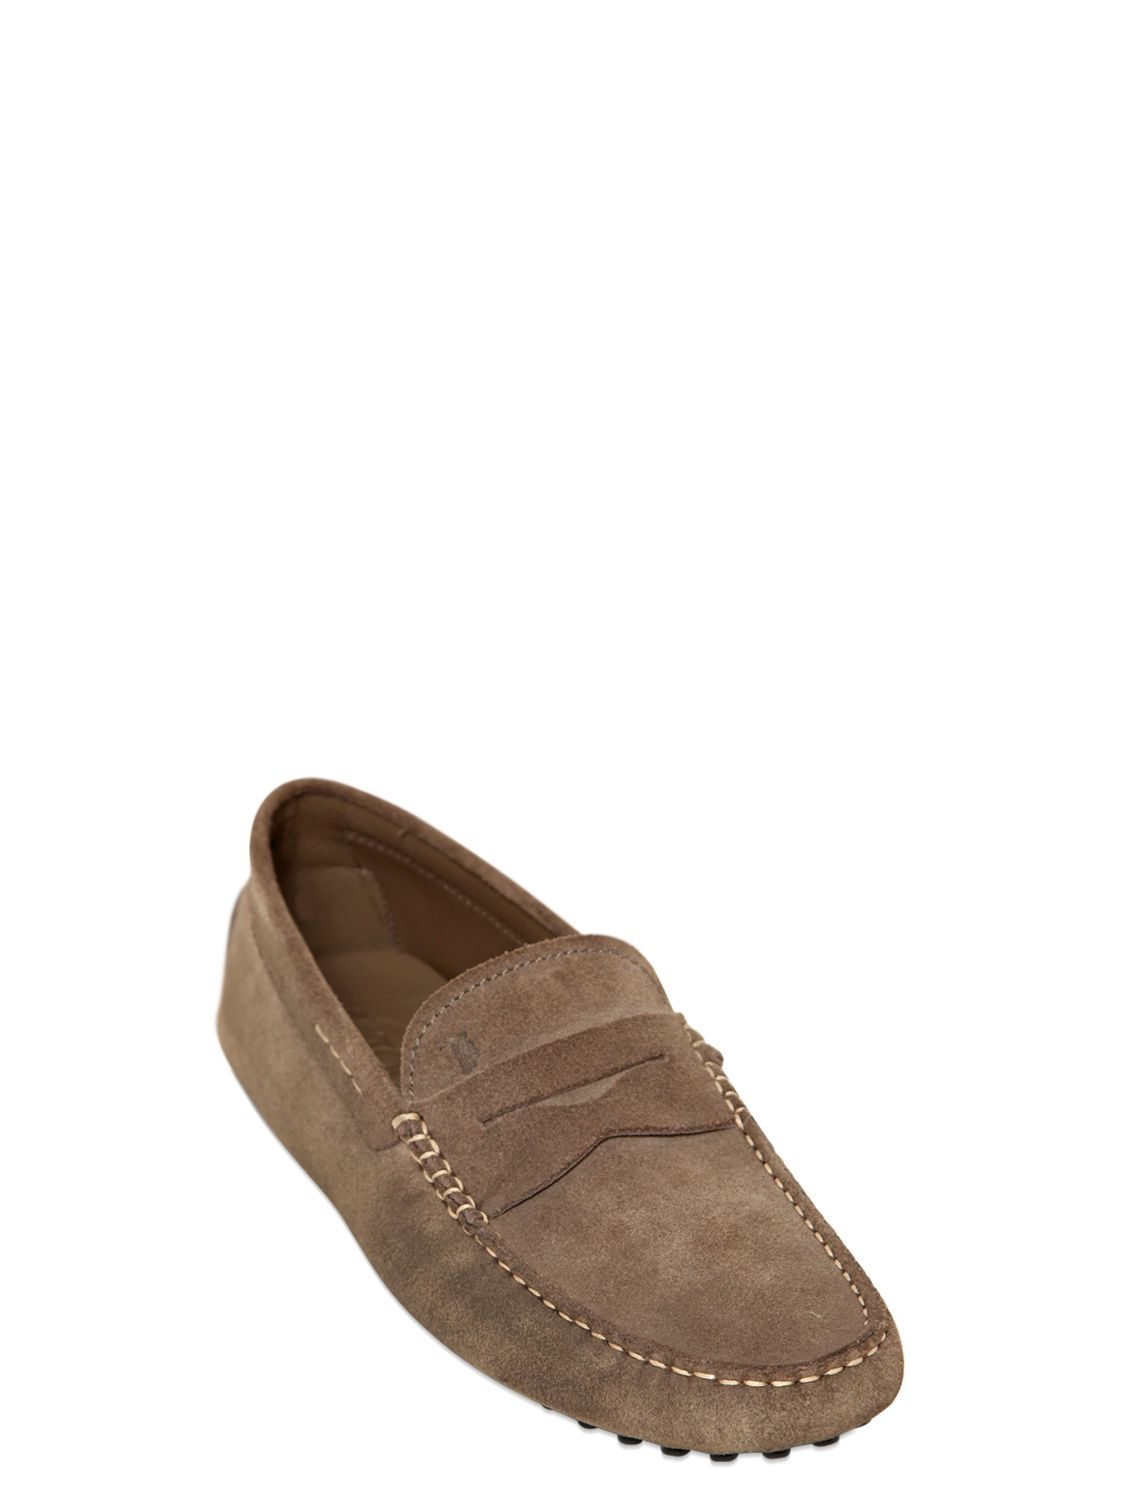 the latest fe90d 9700d tods-gray-gommino-suede-driving-shoes -product-1-16619614-4-322759564-normal.jpeg